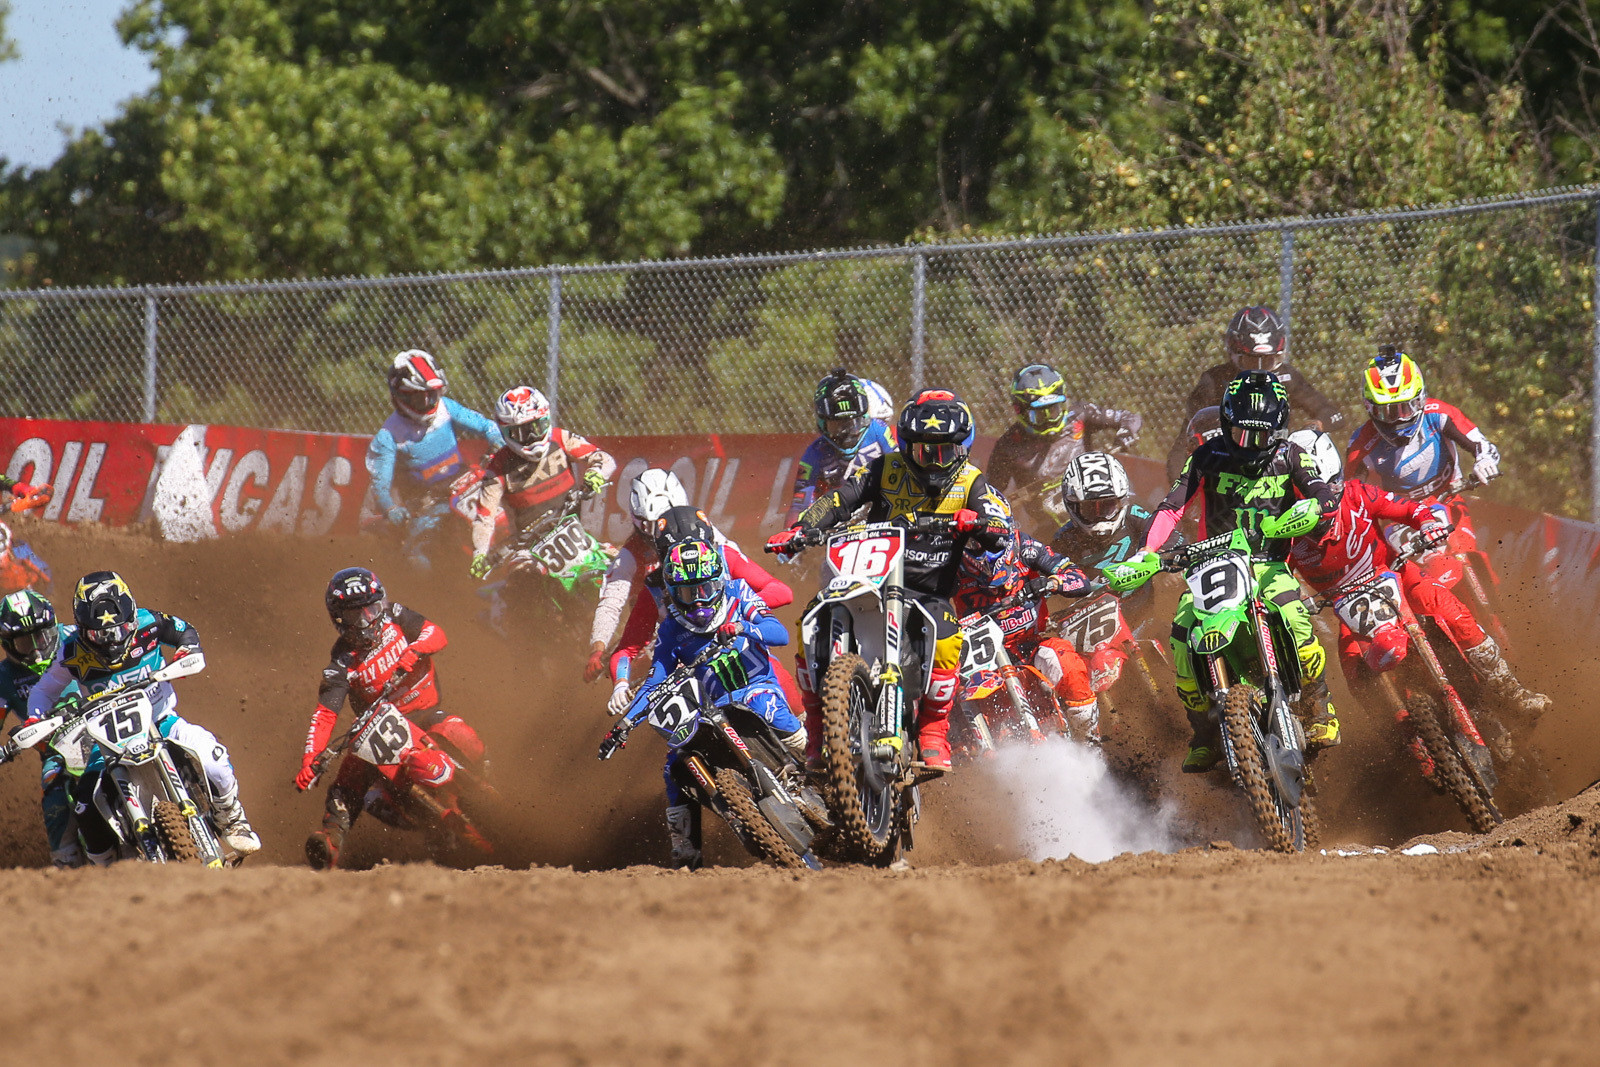 Zach Osborne kicks up some chalk as he leads the pack over the holeshot line.